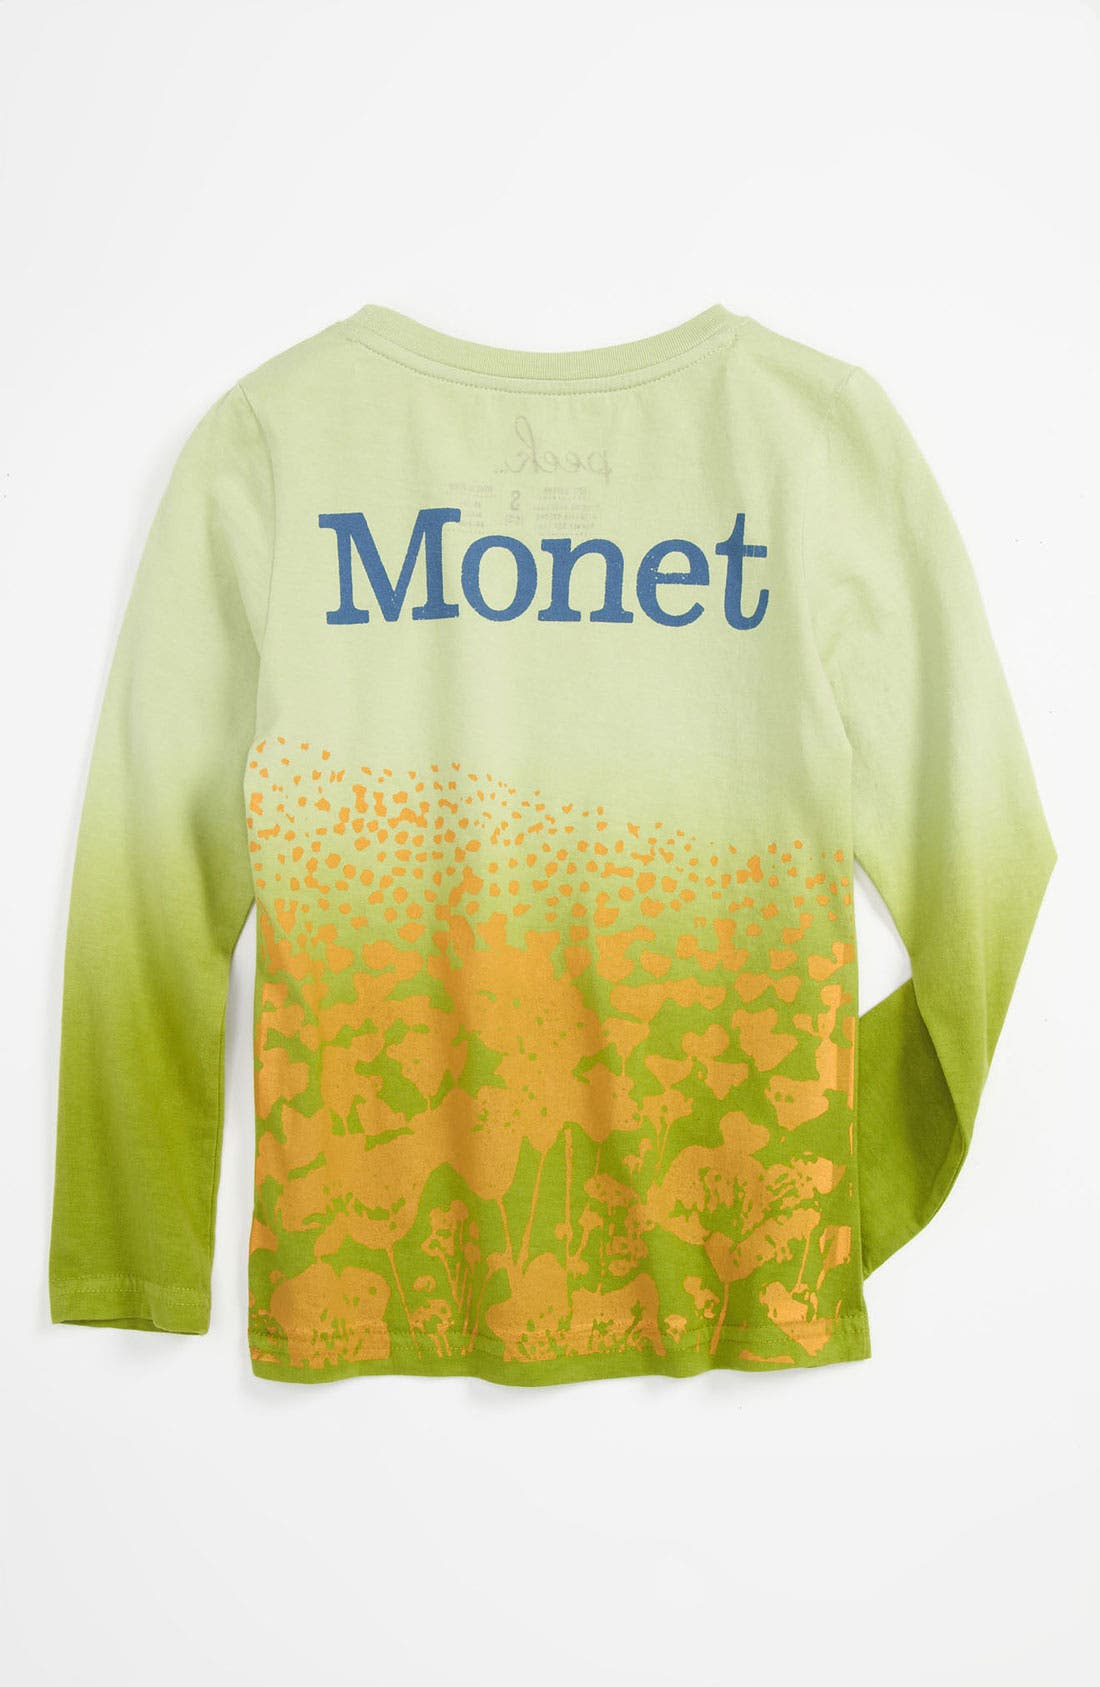 Alternate Image 2  - Peek 'Monet' Tee (Toddler, Little Girls & Big Girls)